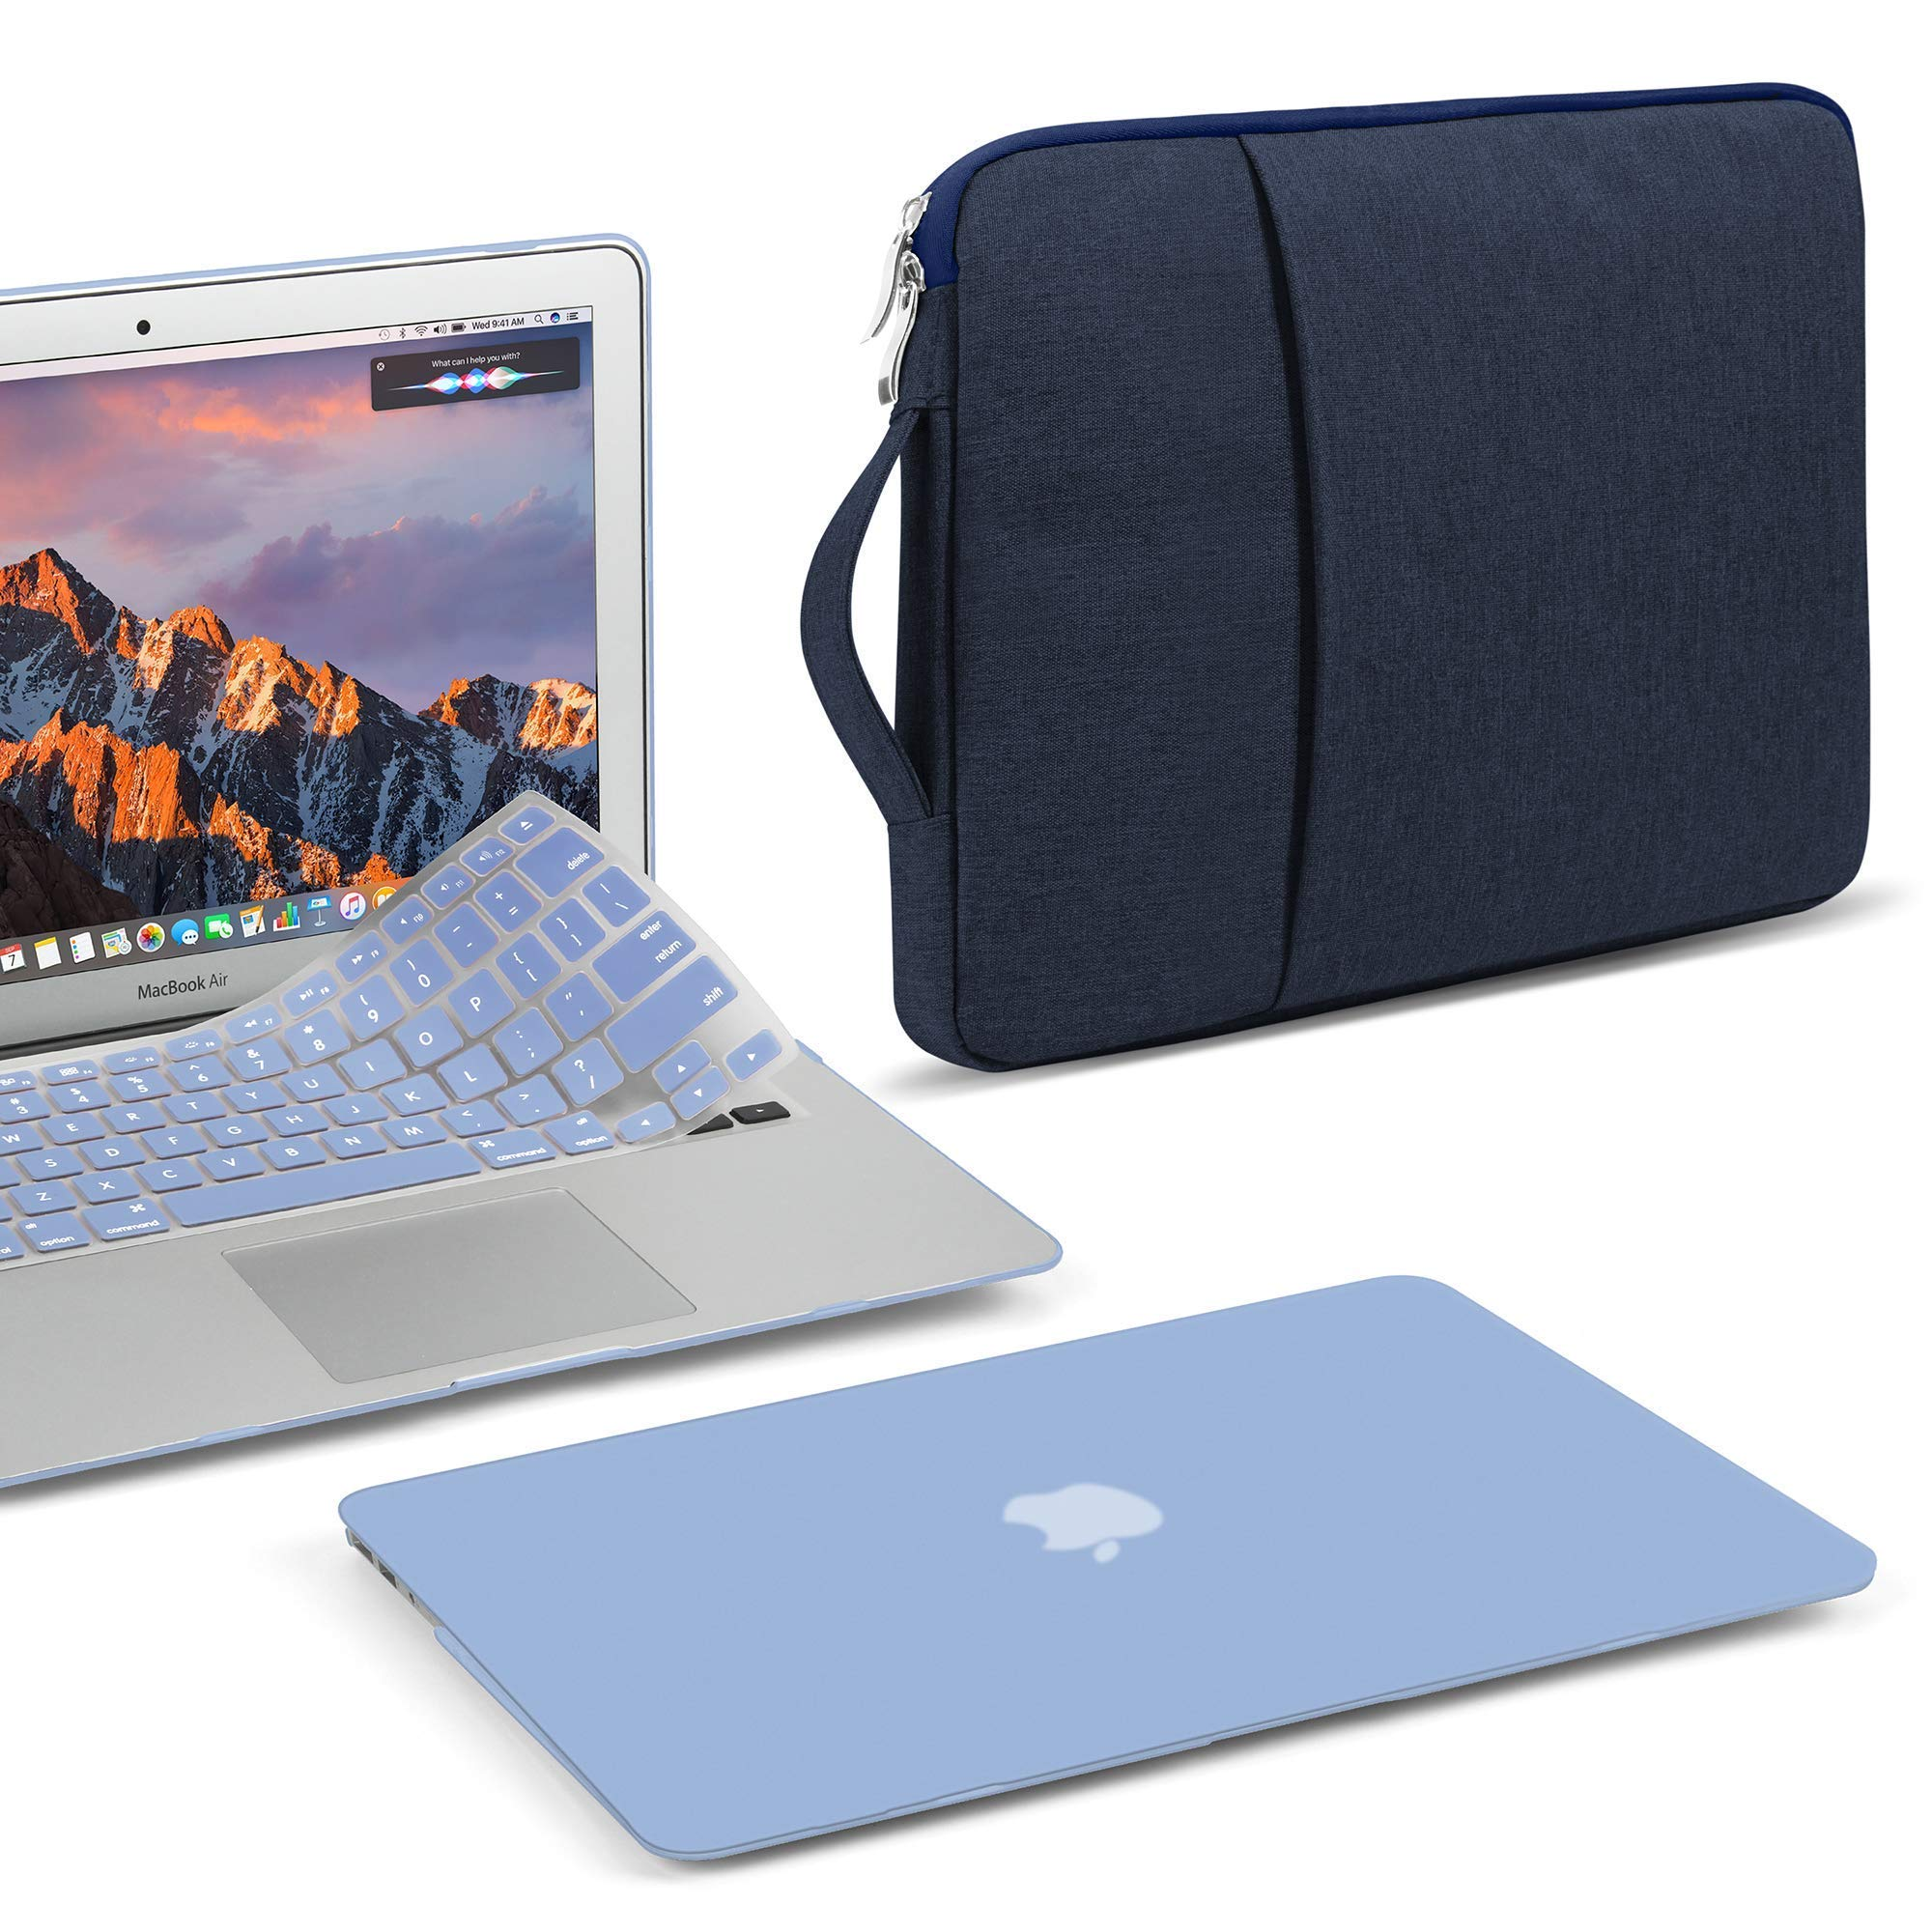 GMYLE MacBook Air 13 Inch Case A1466 A1369 Old Version 2010 2017, 13 13.3 Inch Handle Carrying Sleeve Bag, Keyboard Cover 3 in 1 Set (Serenity Blue)